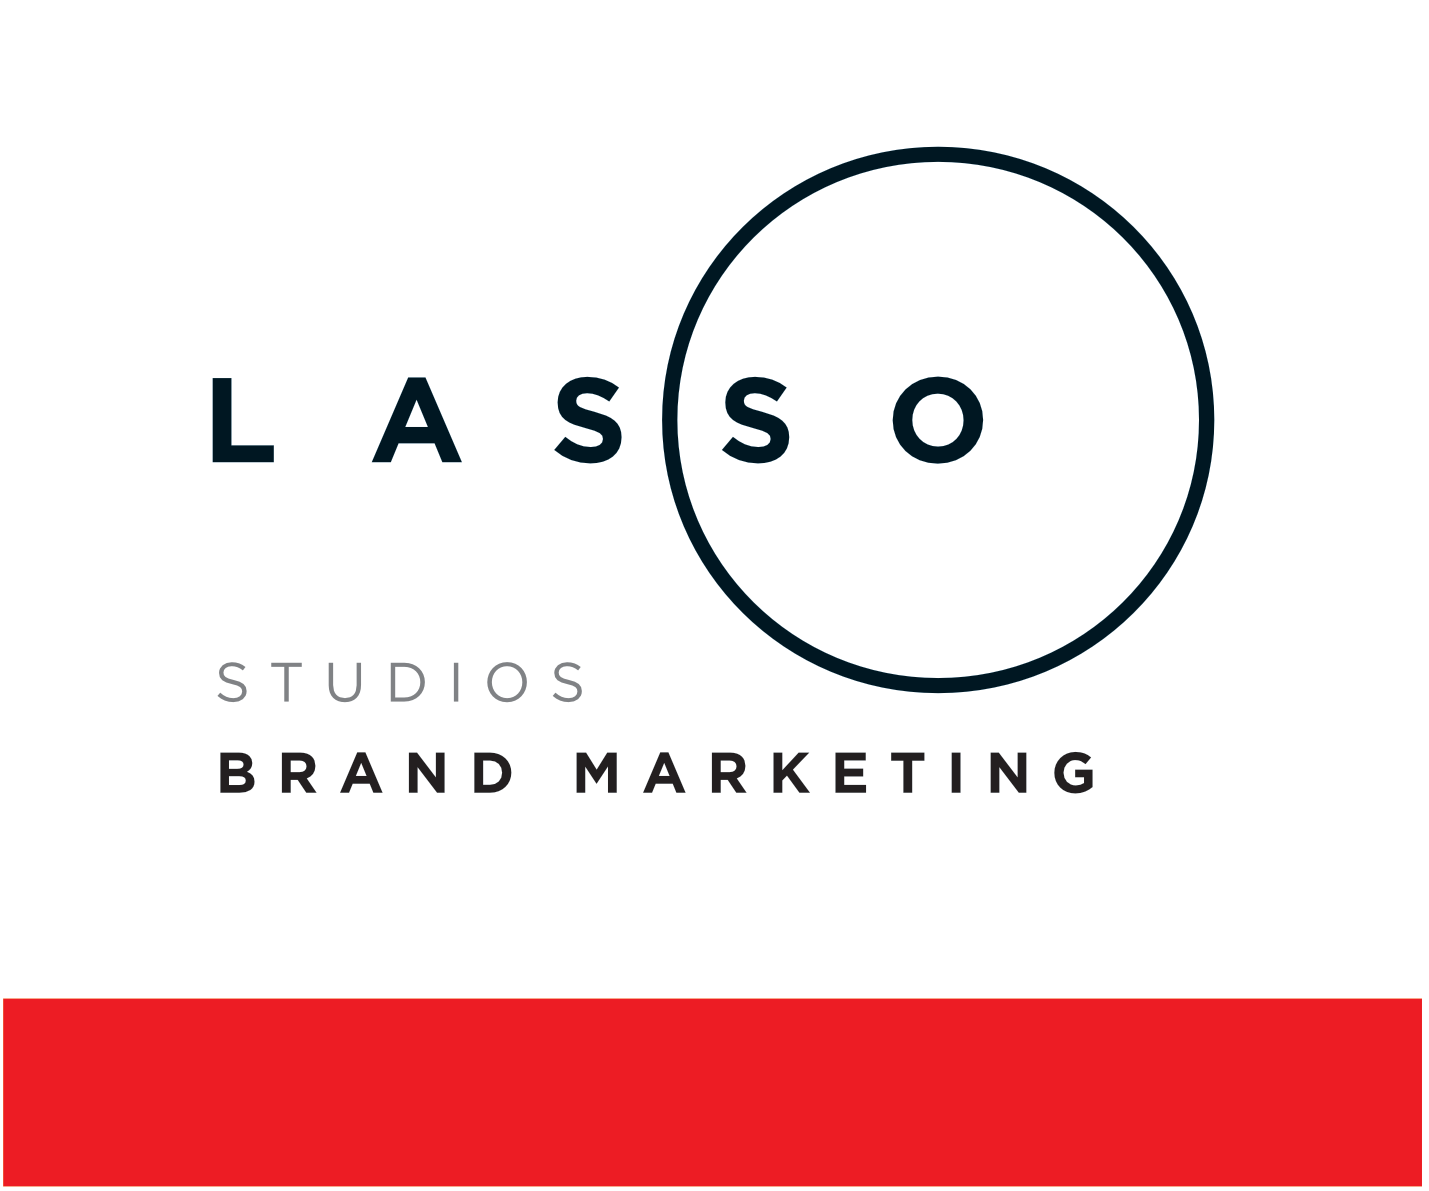 Lasso Studies: Brand Marketing